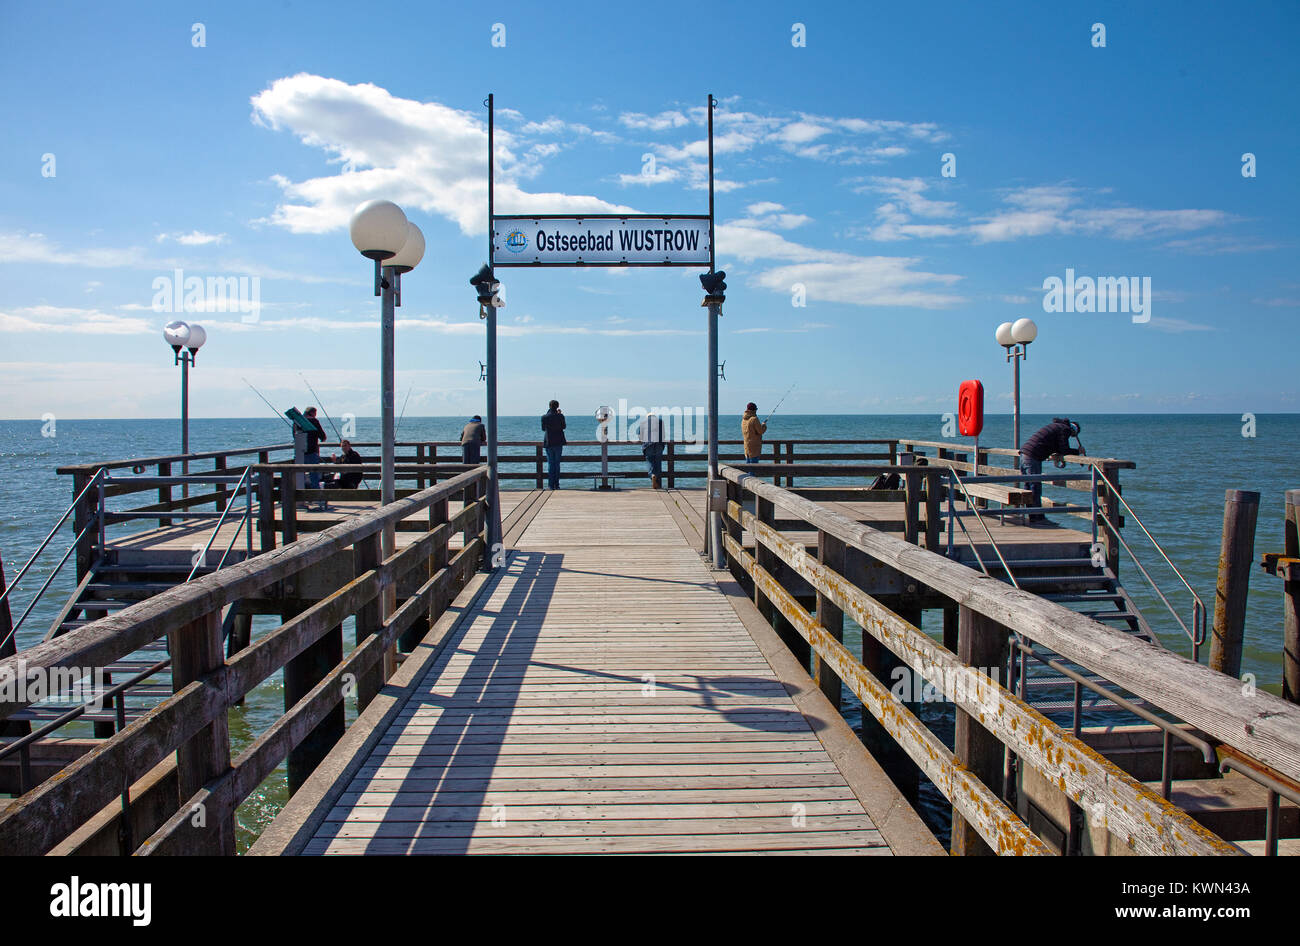 Pier of Wustrow, Fishland, Mecklenburg-Western Pomerania, Baltic sea, Germany, Europe Stock Photo